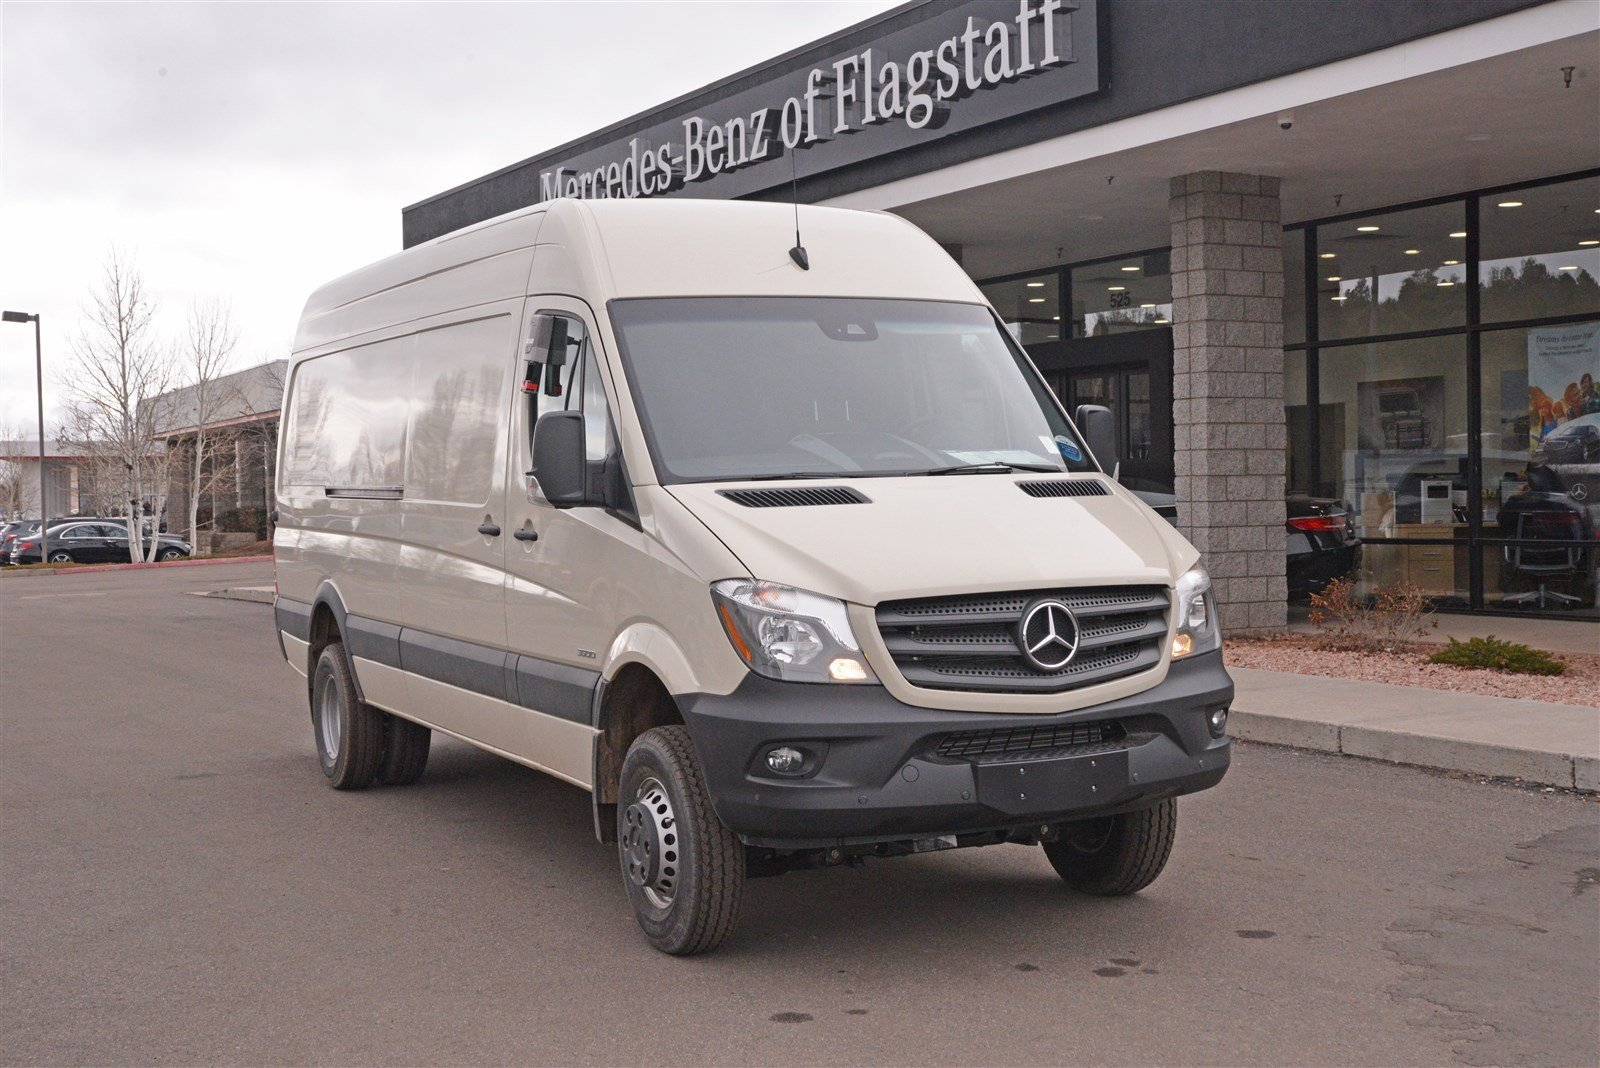 New 2016 mercedes benz sprinter 3500 chassis cab cargo van for Mercedes benz of flagstaff